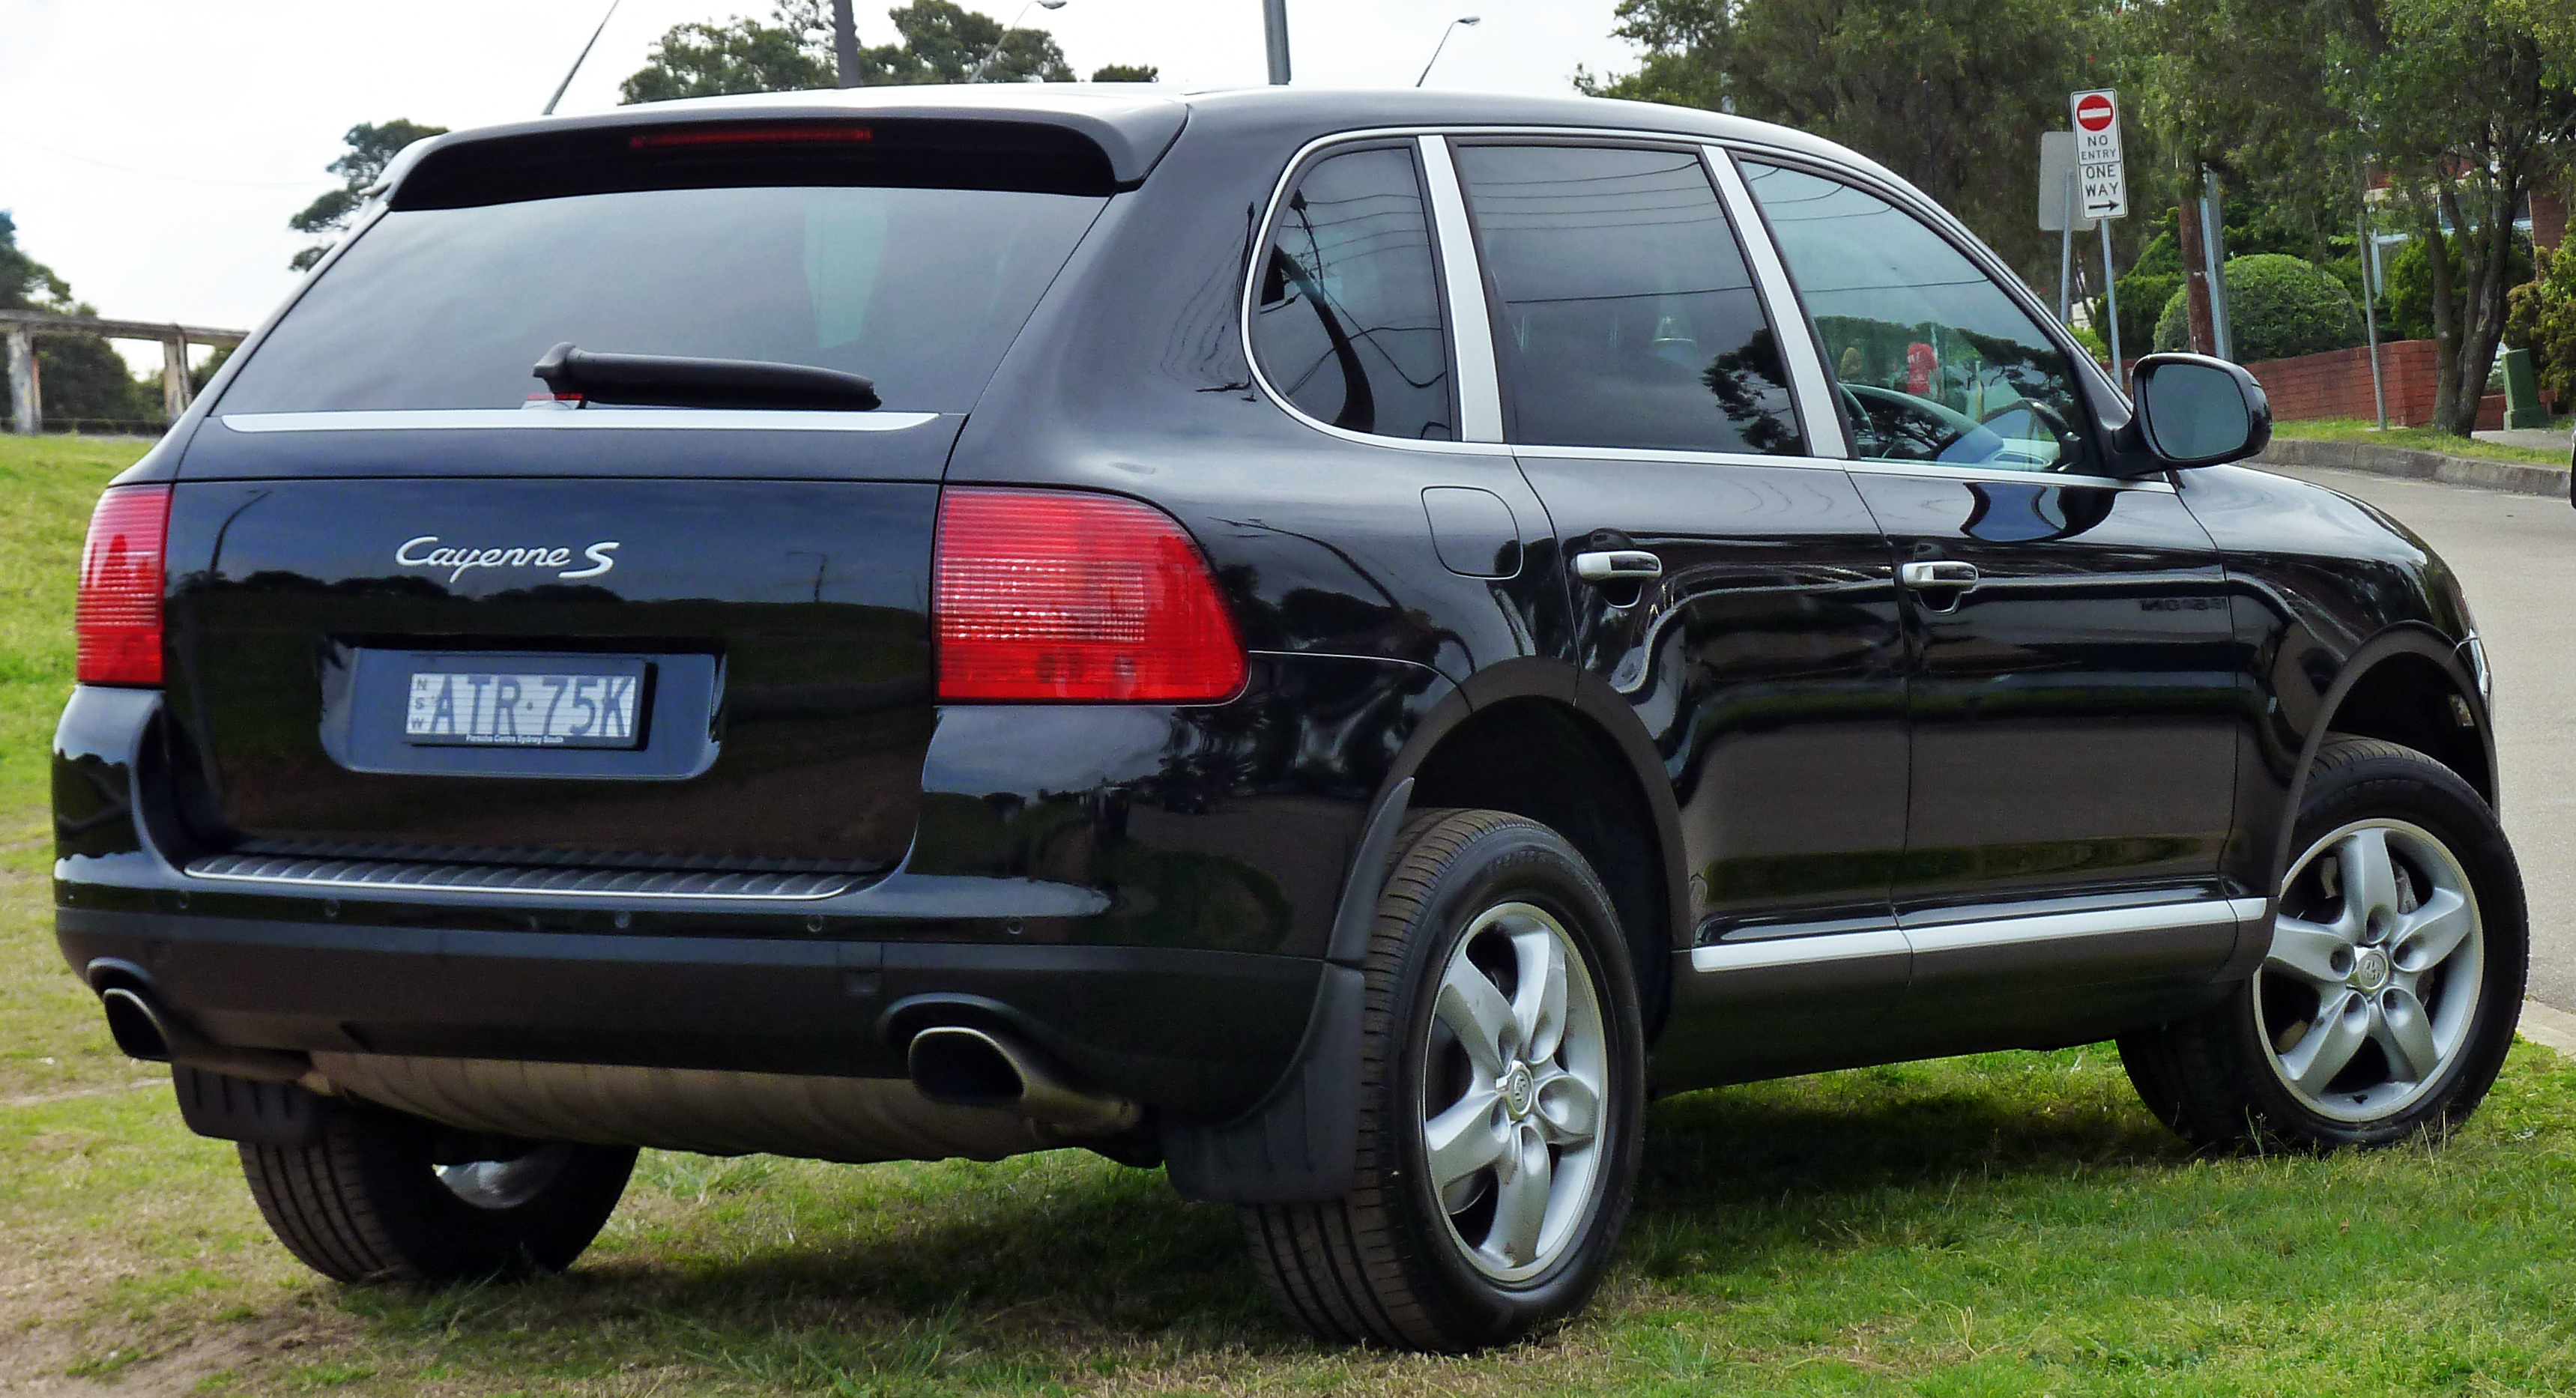 file 2003 2006 porsche cayenne 9pa s wagon wikimedia commons. Black Bedroom Furniture Sets. Home Design Ideas